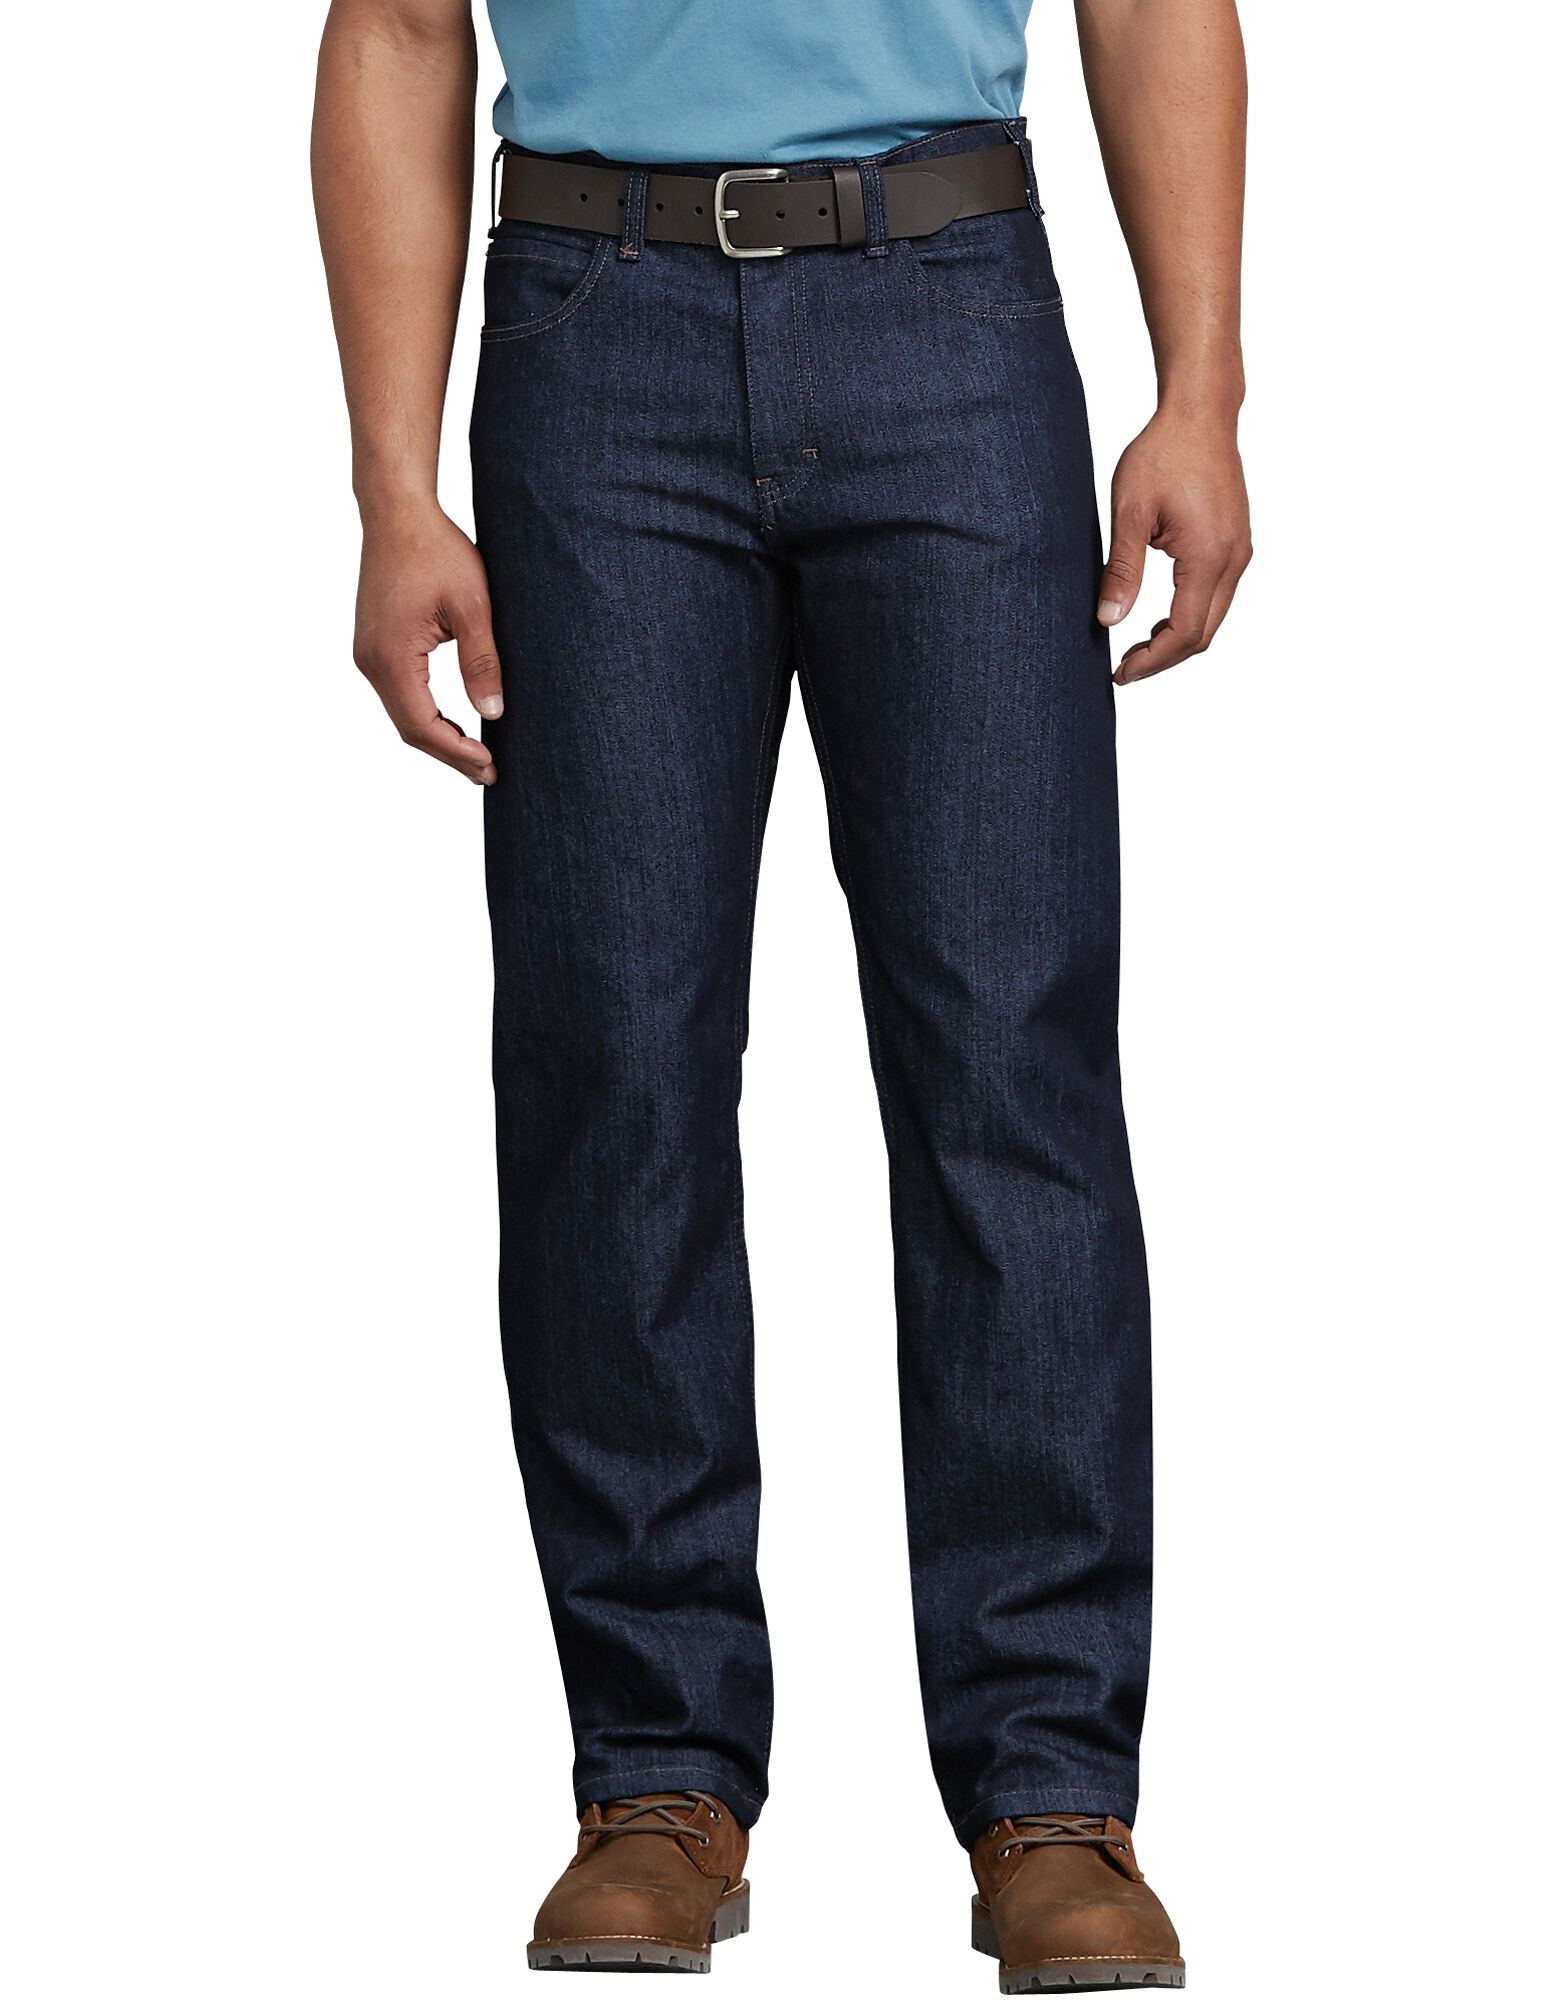 Mens Jeans | Relaxed Regular Industrial Fit | Dickies